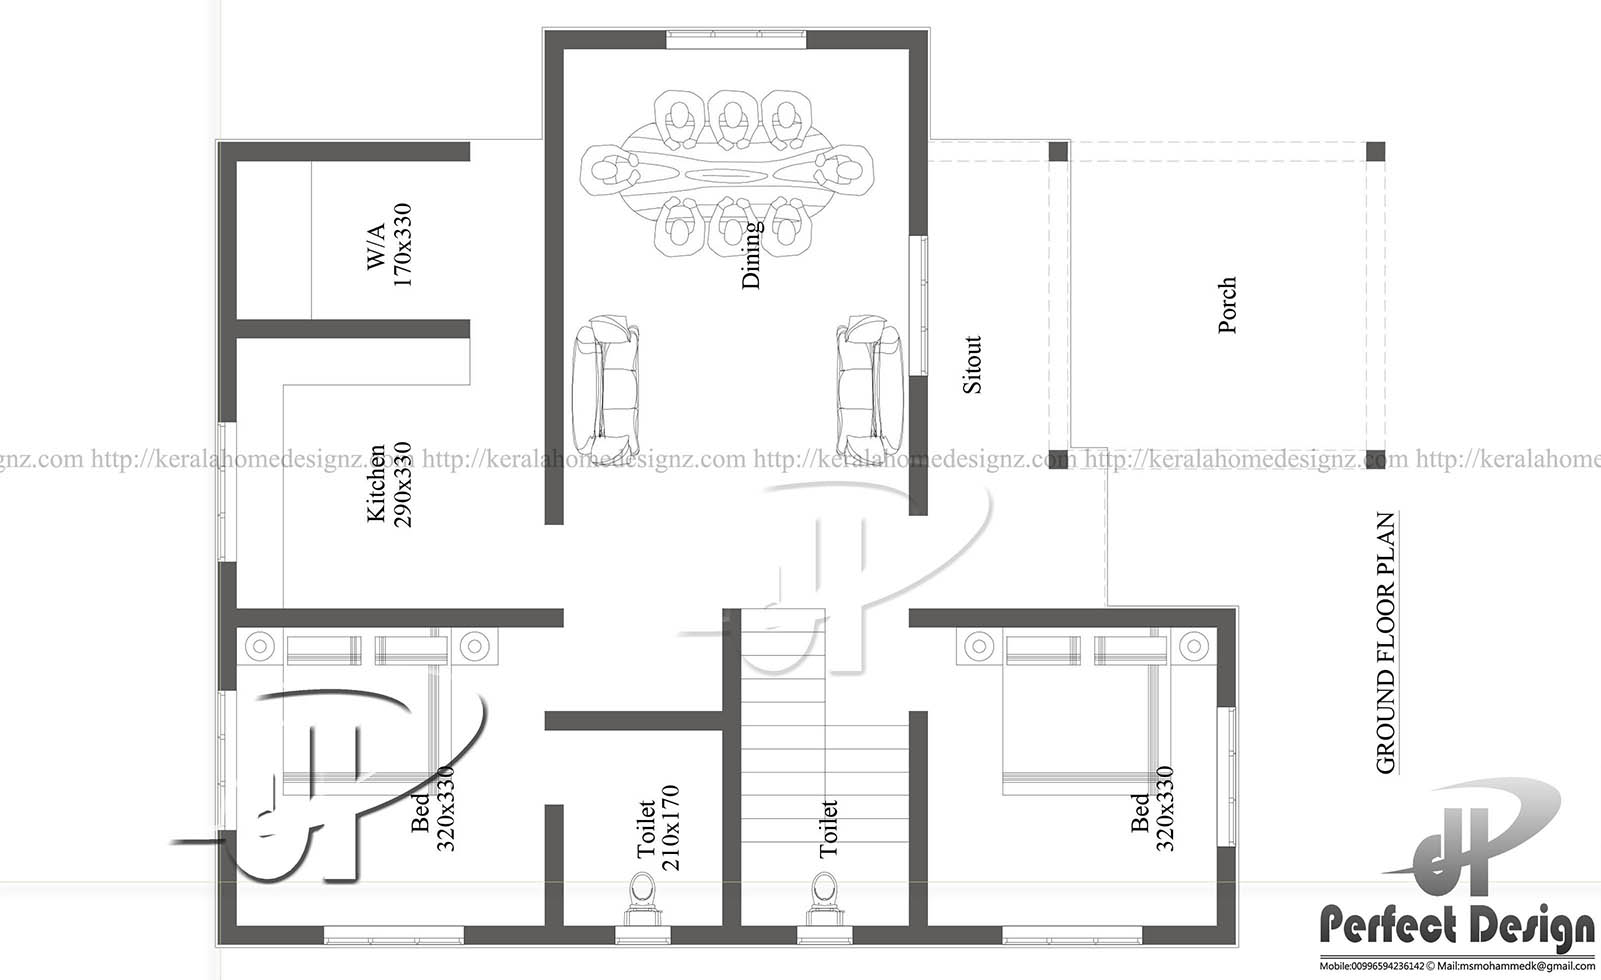 Modern house under 1000 square feet kerala home design for Modern house plans under 1000 sq ft